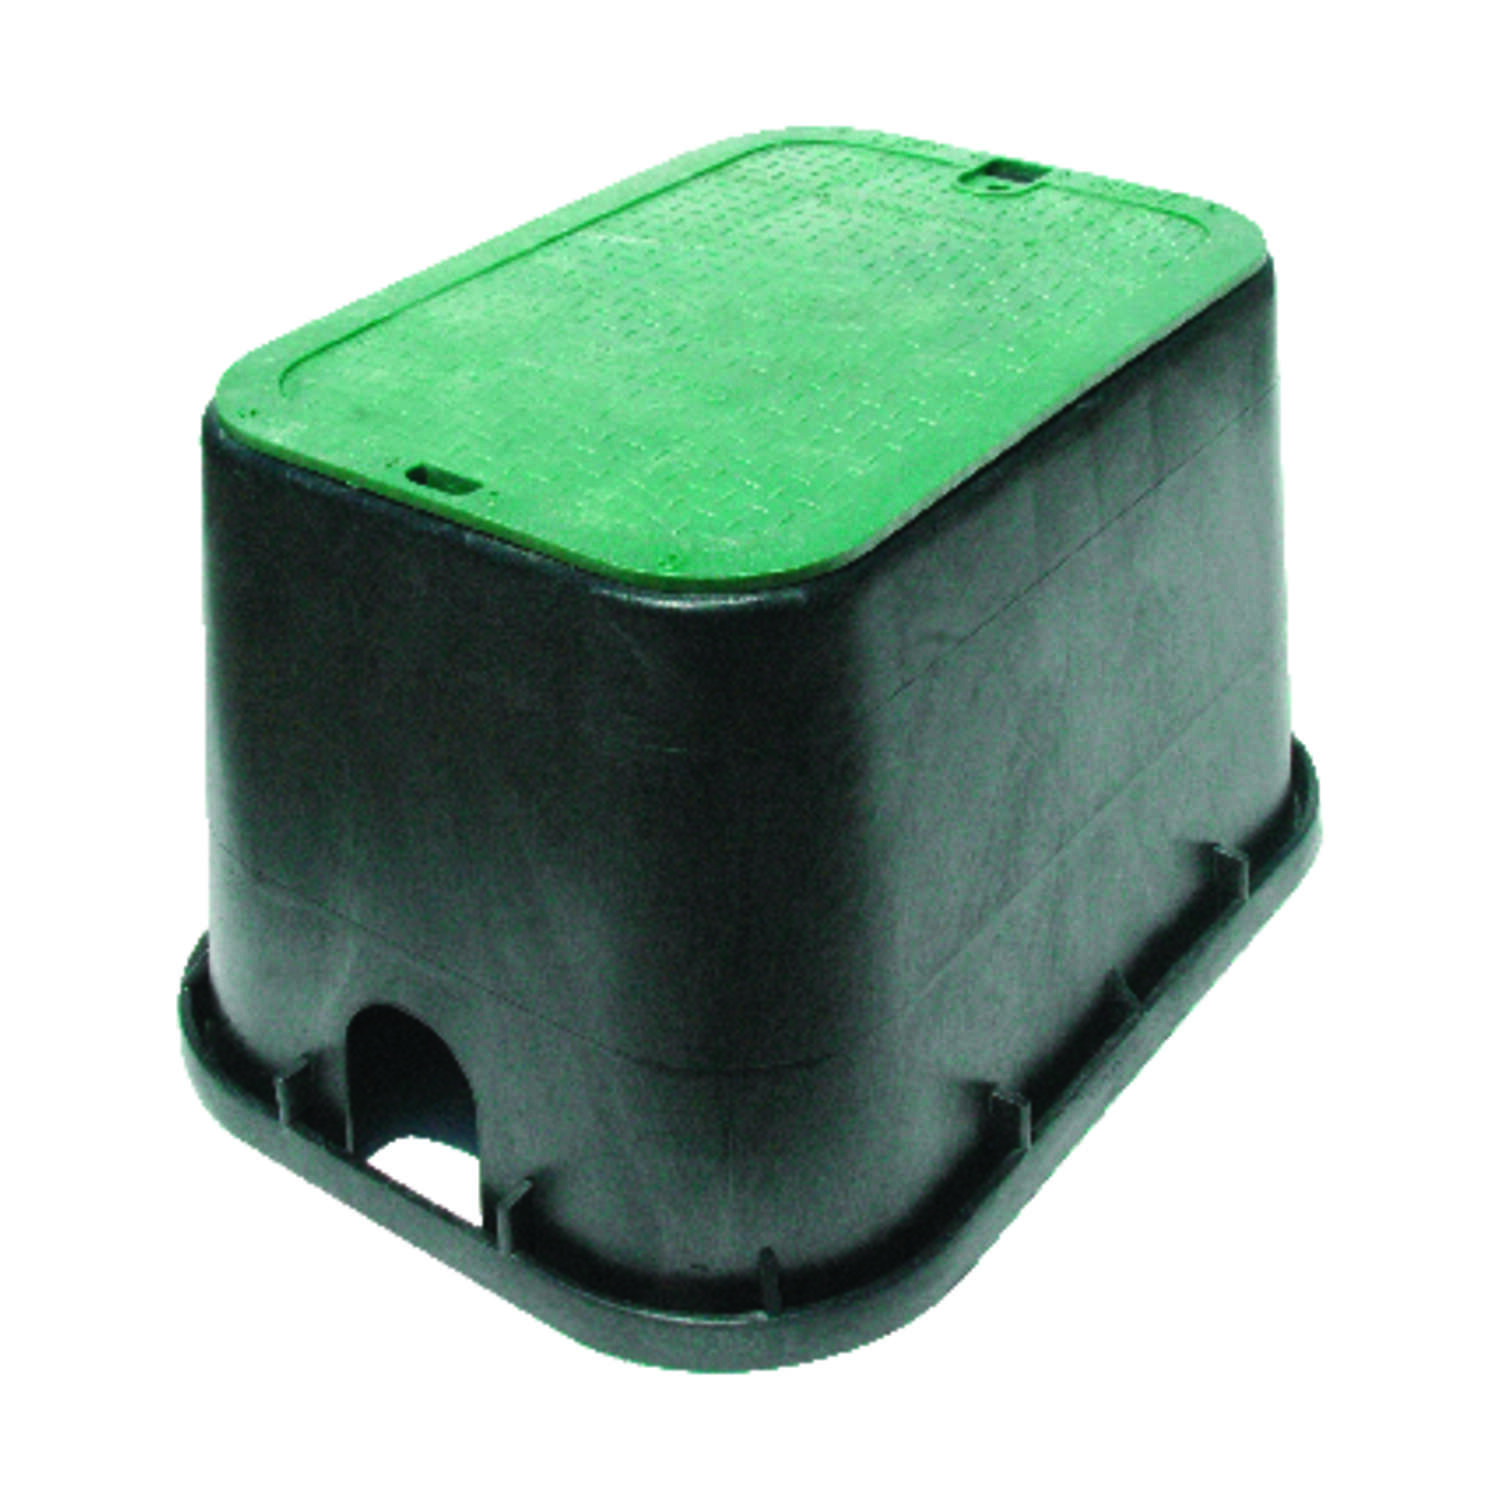 NDS  21 inch  W x 12 inch  H Rectangular  Valve Box with Overlapping Cover  Black/Green